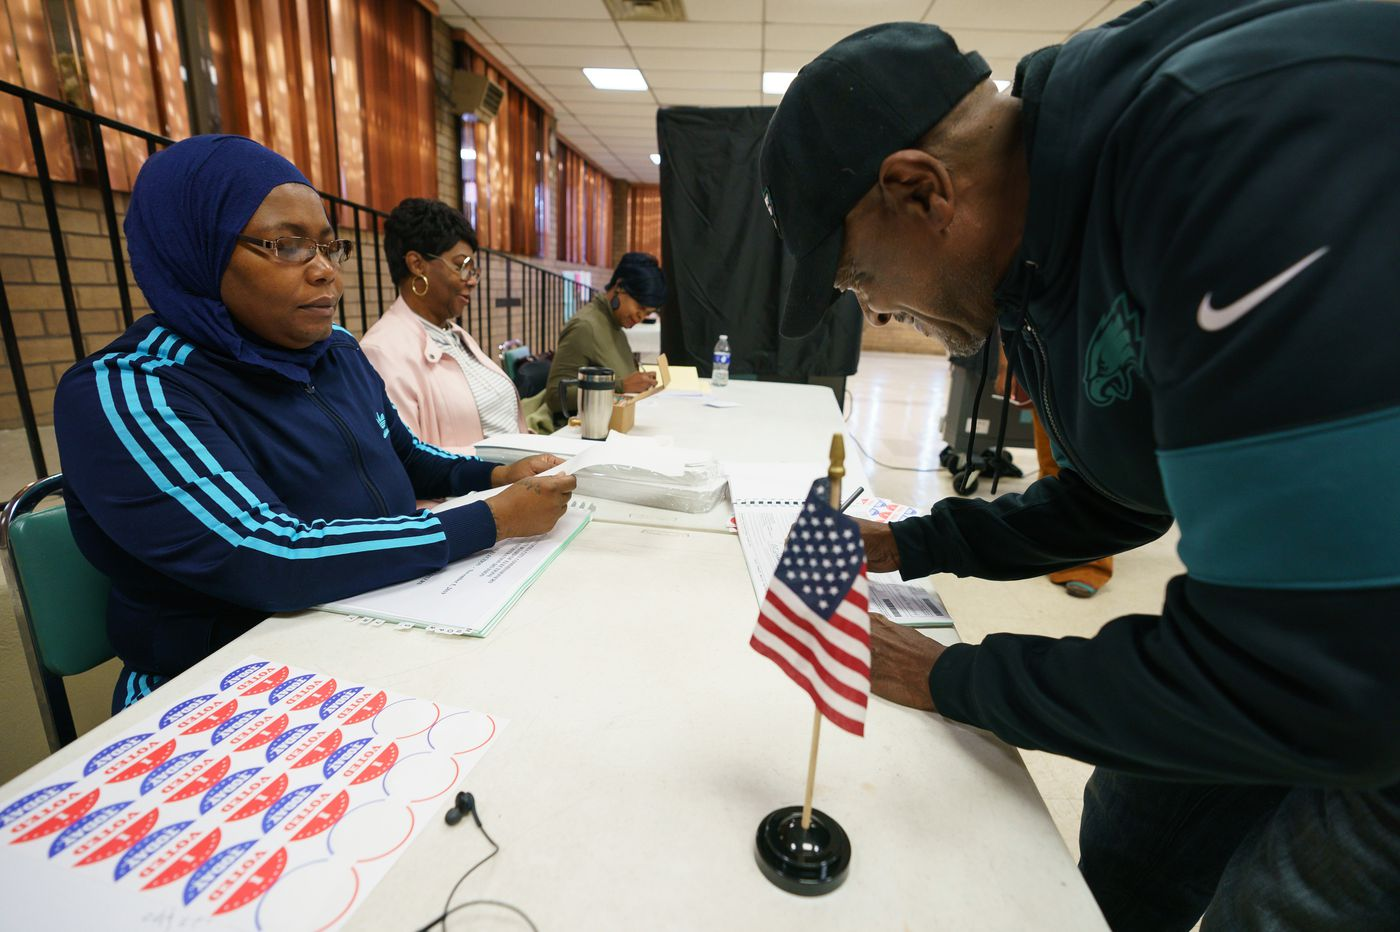 7 reforms that would make it easier for everyone to vote in Pennsylvania | Opinion